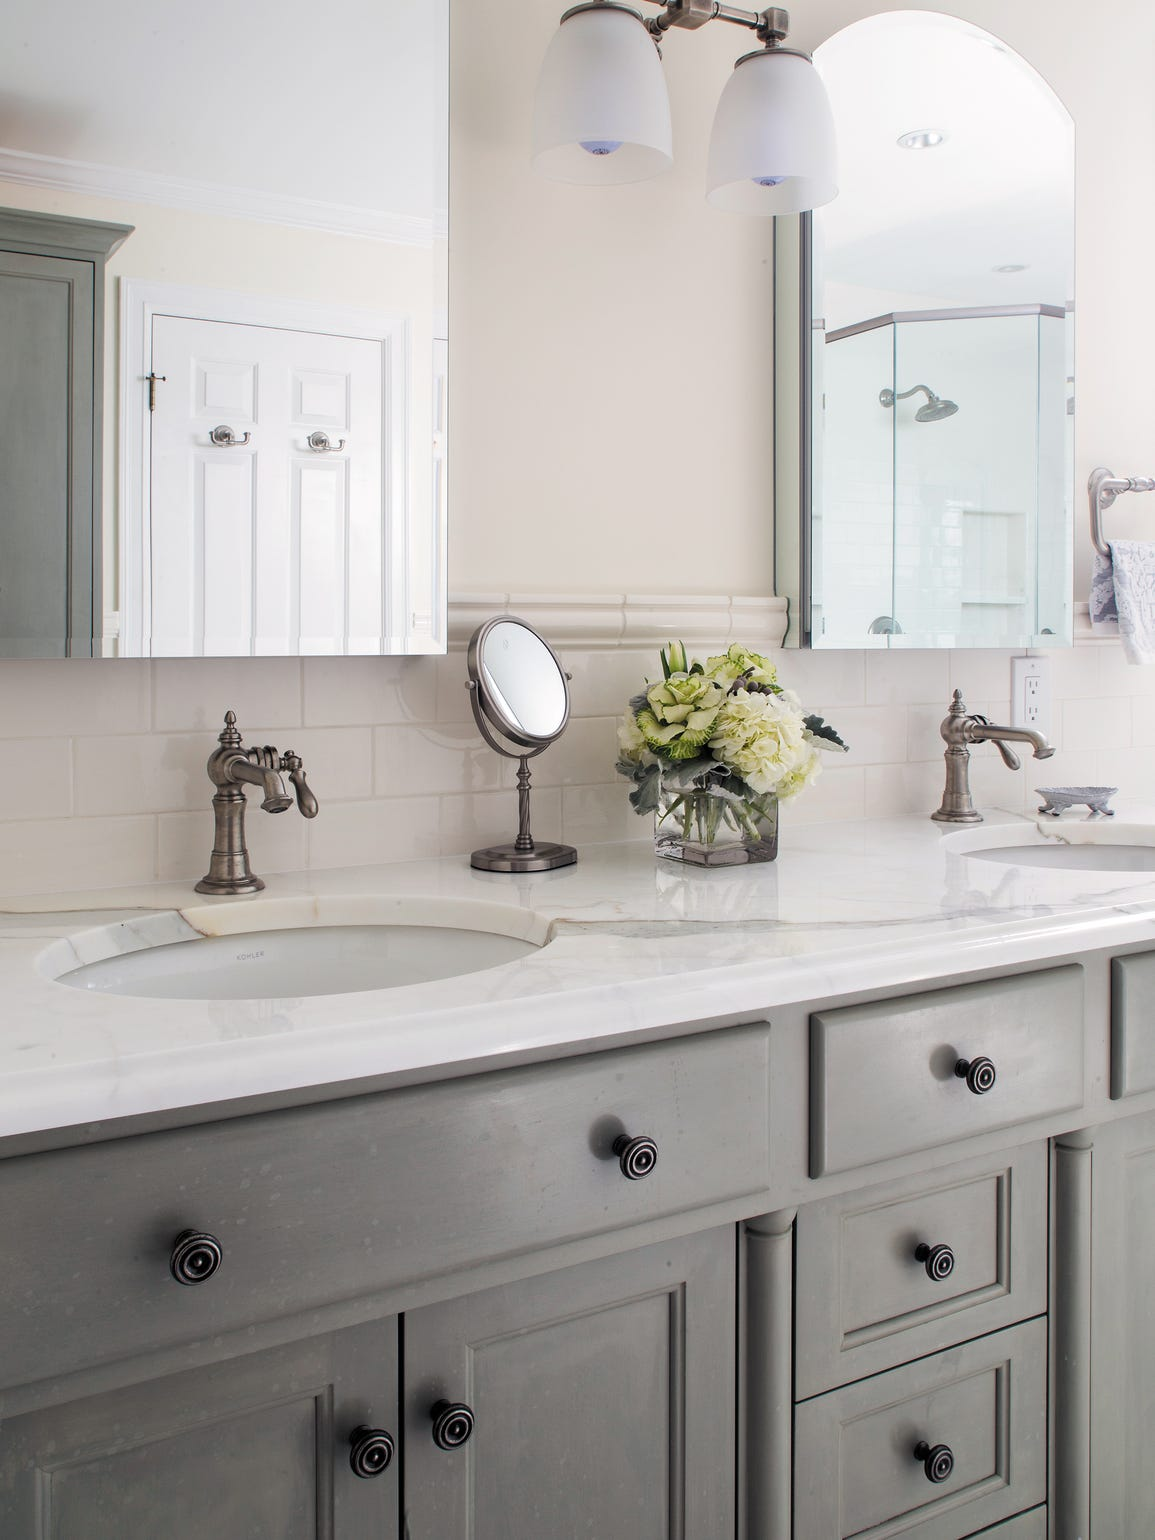 Gray and white carry through in bathrooms for a traditional-chic